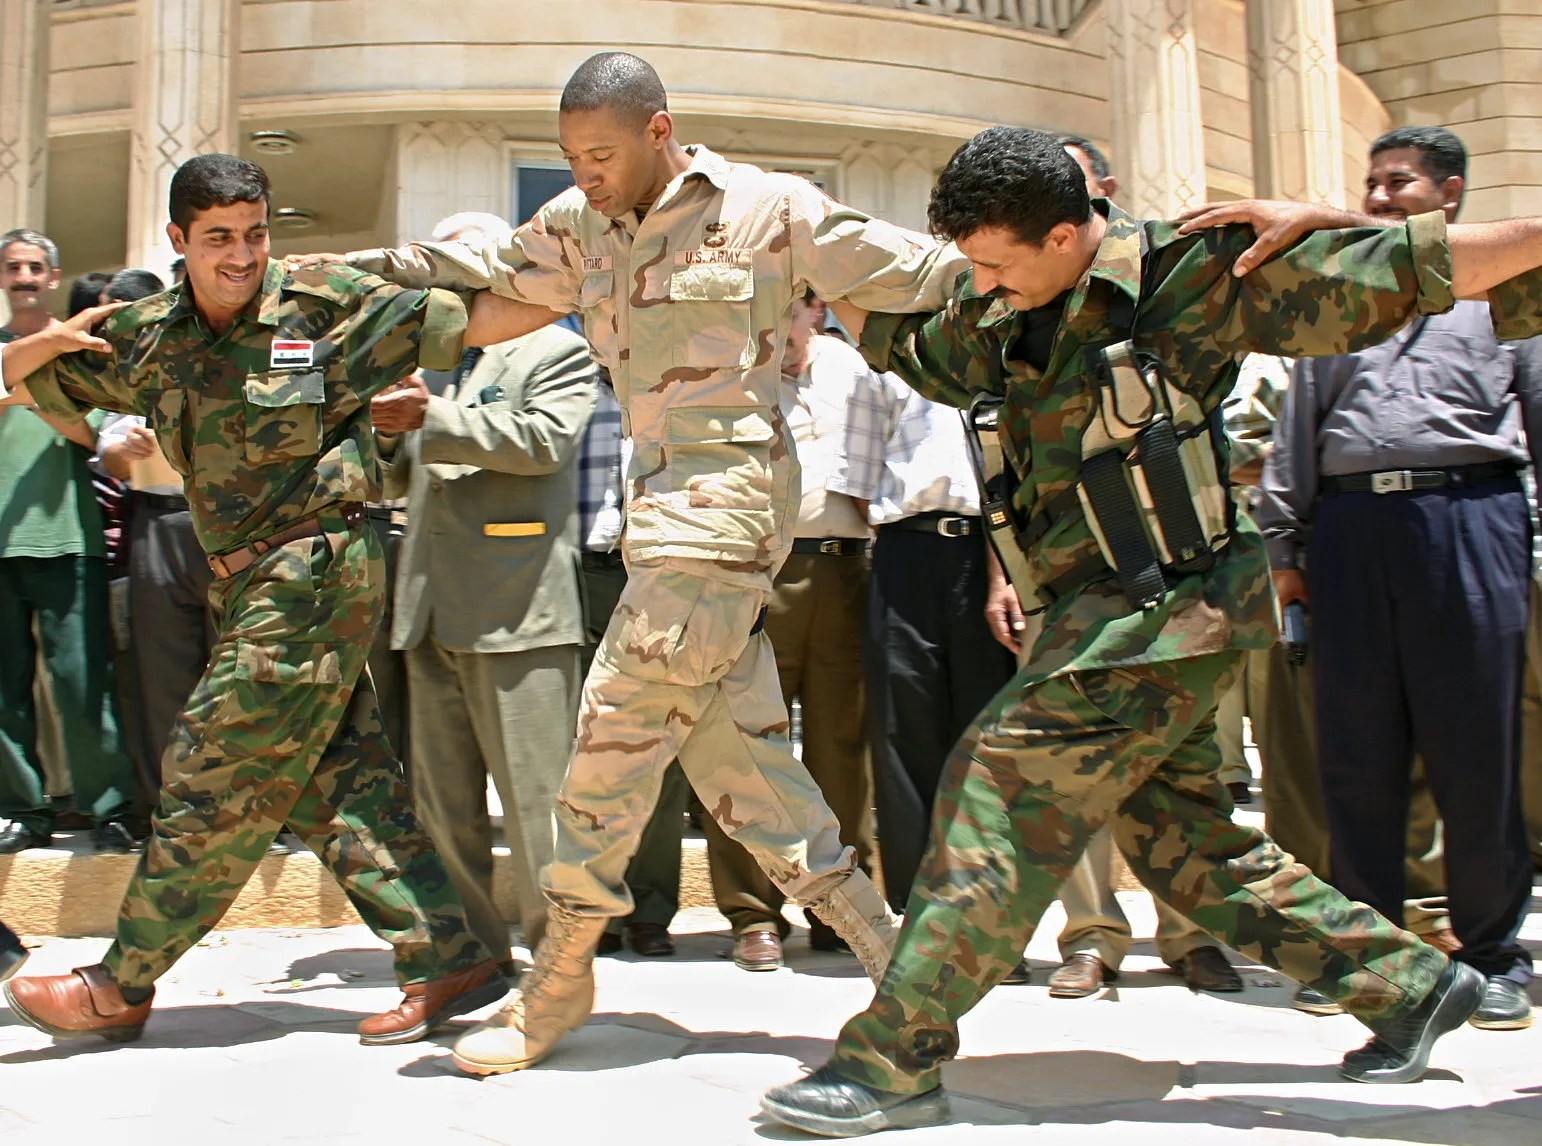 Then Col. Dana JH Pittard, US army commander for the Iraqi Dyala province, dances with national guardsmen during an Iraqi flag raising ceremony in Baquba, northeast of Baghdad, July 6, 2004.